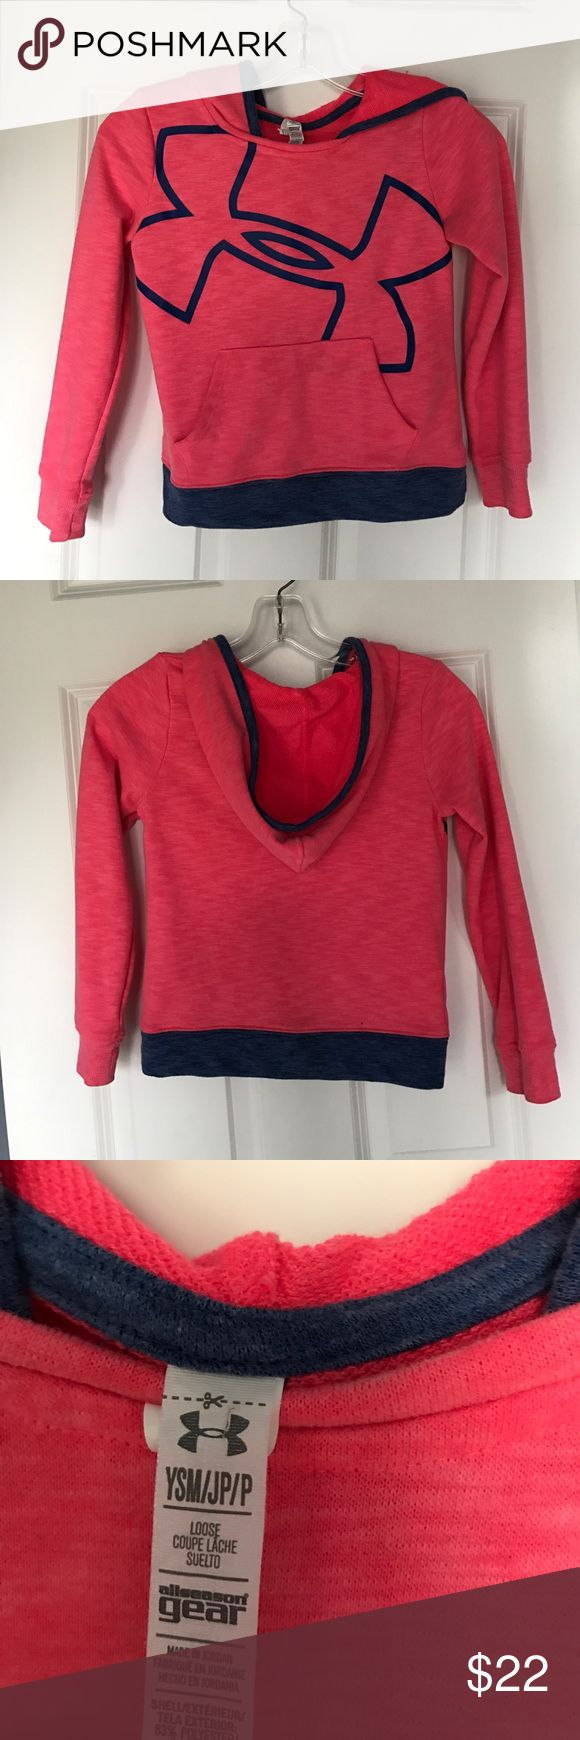 Girls Under Amour sweatshirt Cute hoodie in excellent condition Under Armour Shirts & Tops Sweatshirts & Hoodies